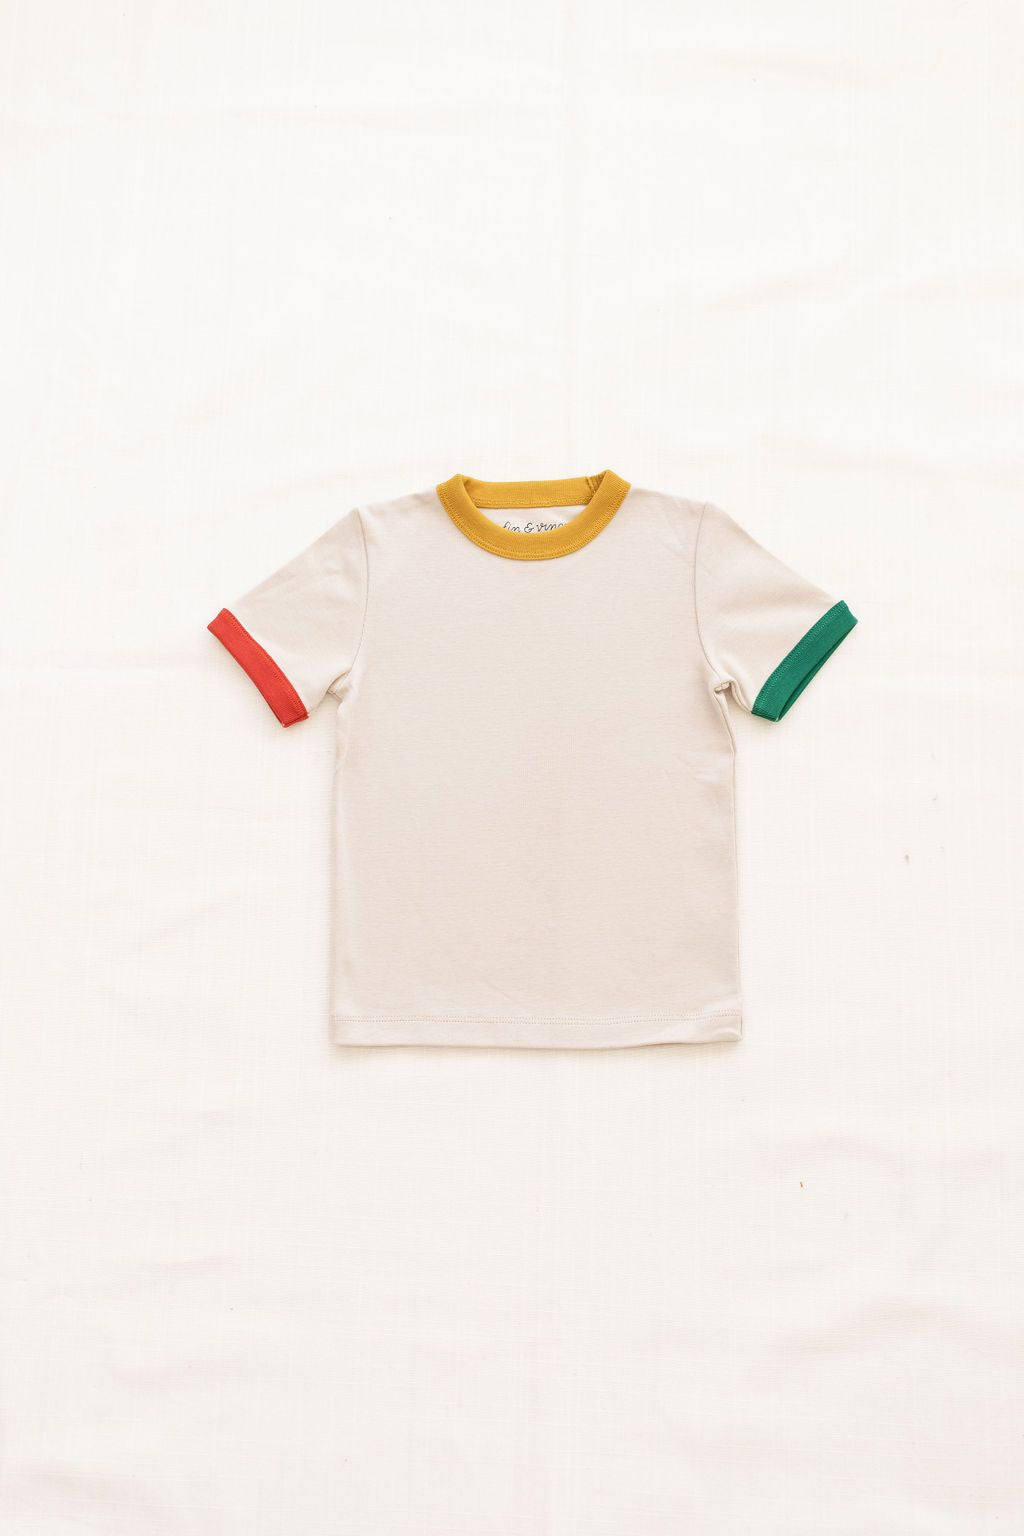 Vintage Tee - Oatmeal w Tri-Color Trim